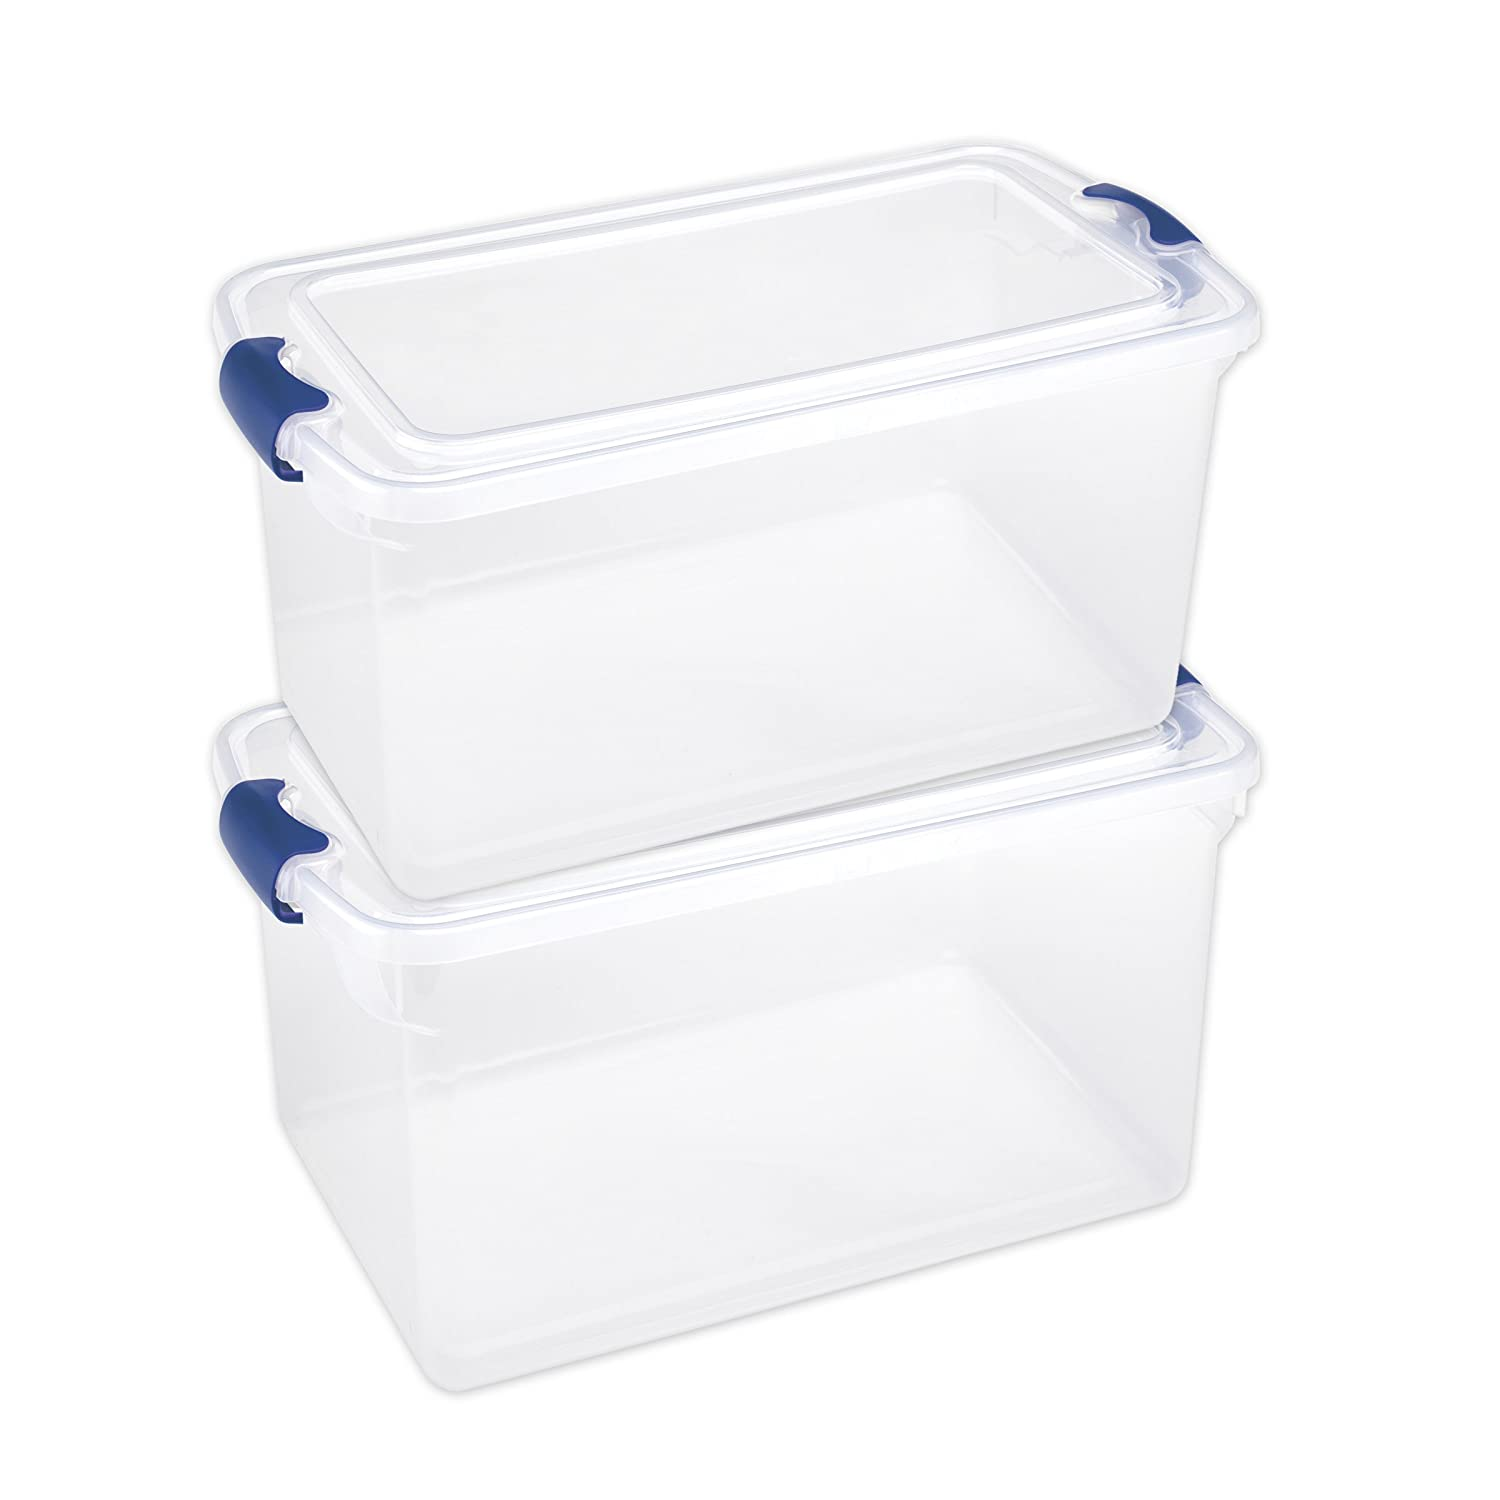 Modular Stackable Storage Bins with Blue Latching Handles Clear 7.5 Quart 5-Pack Homz Plastic Storage